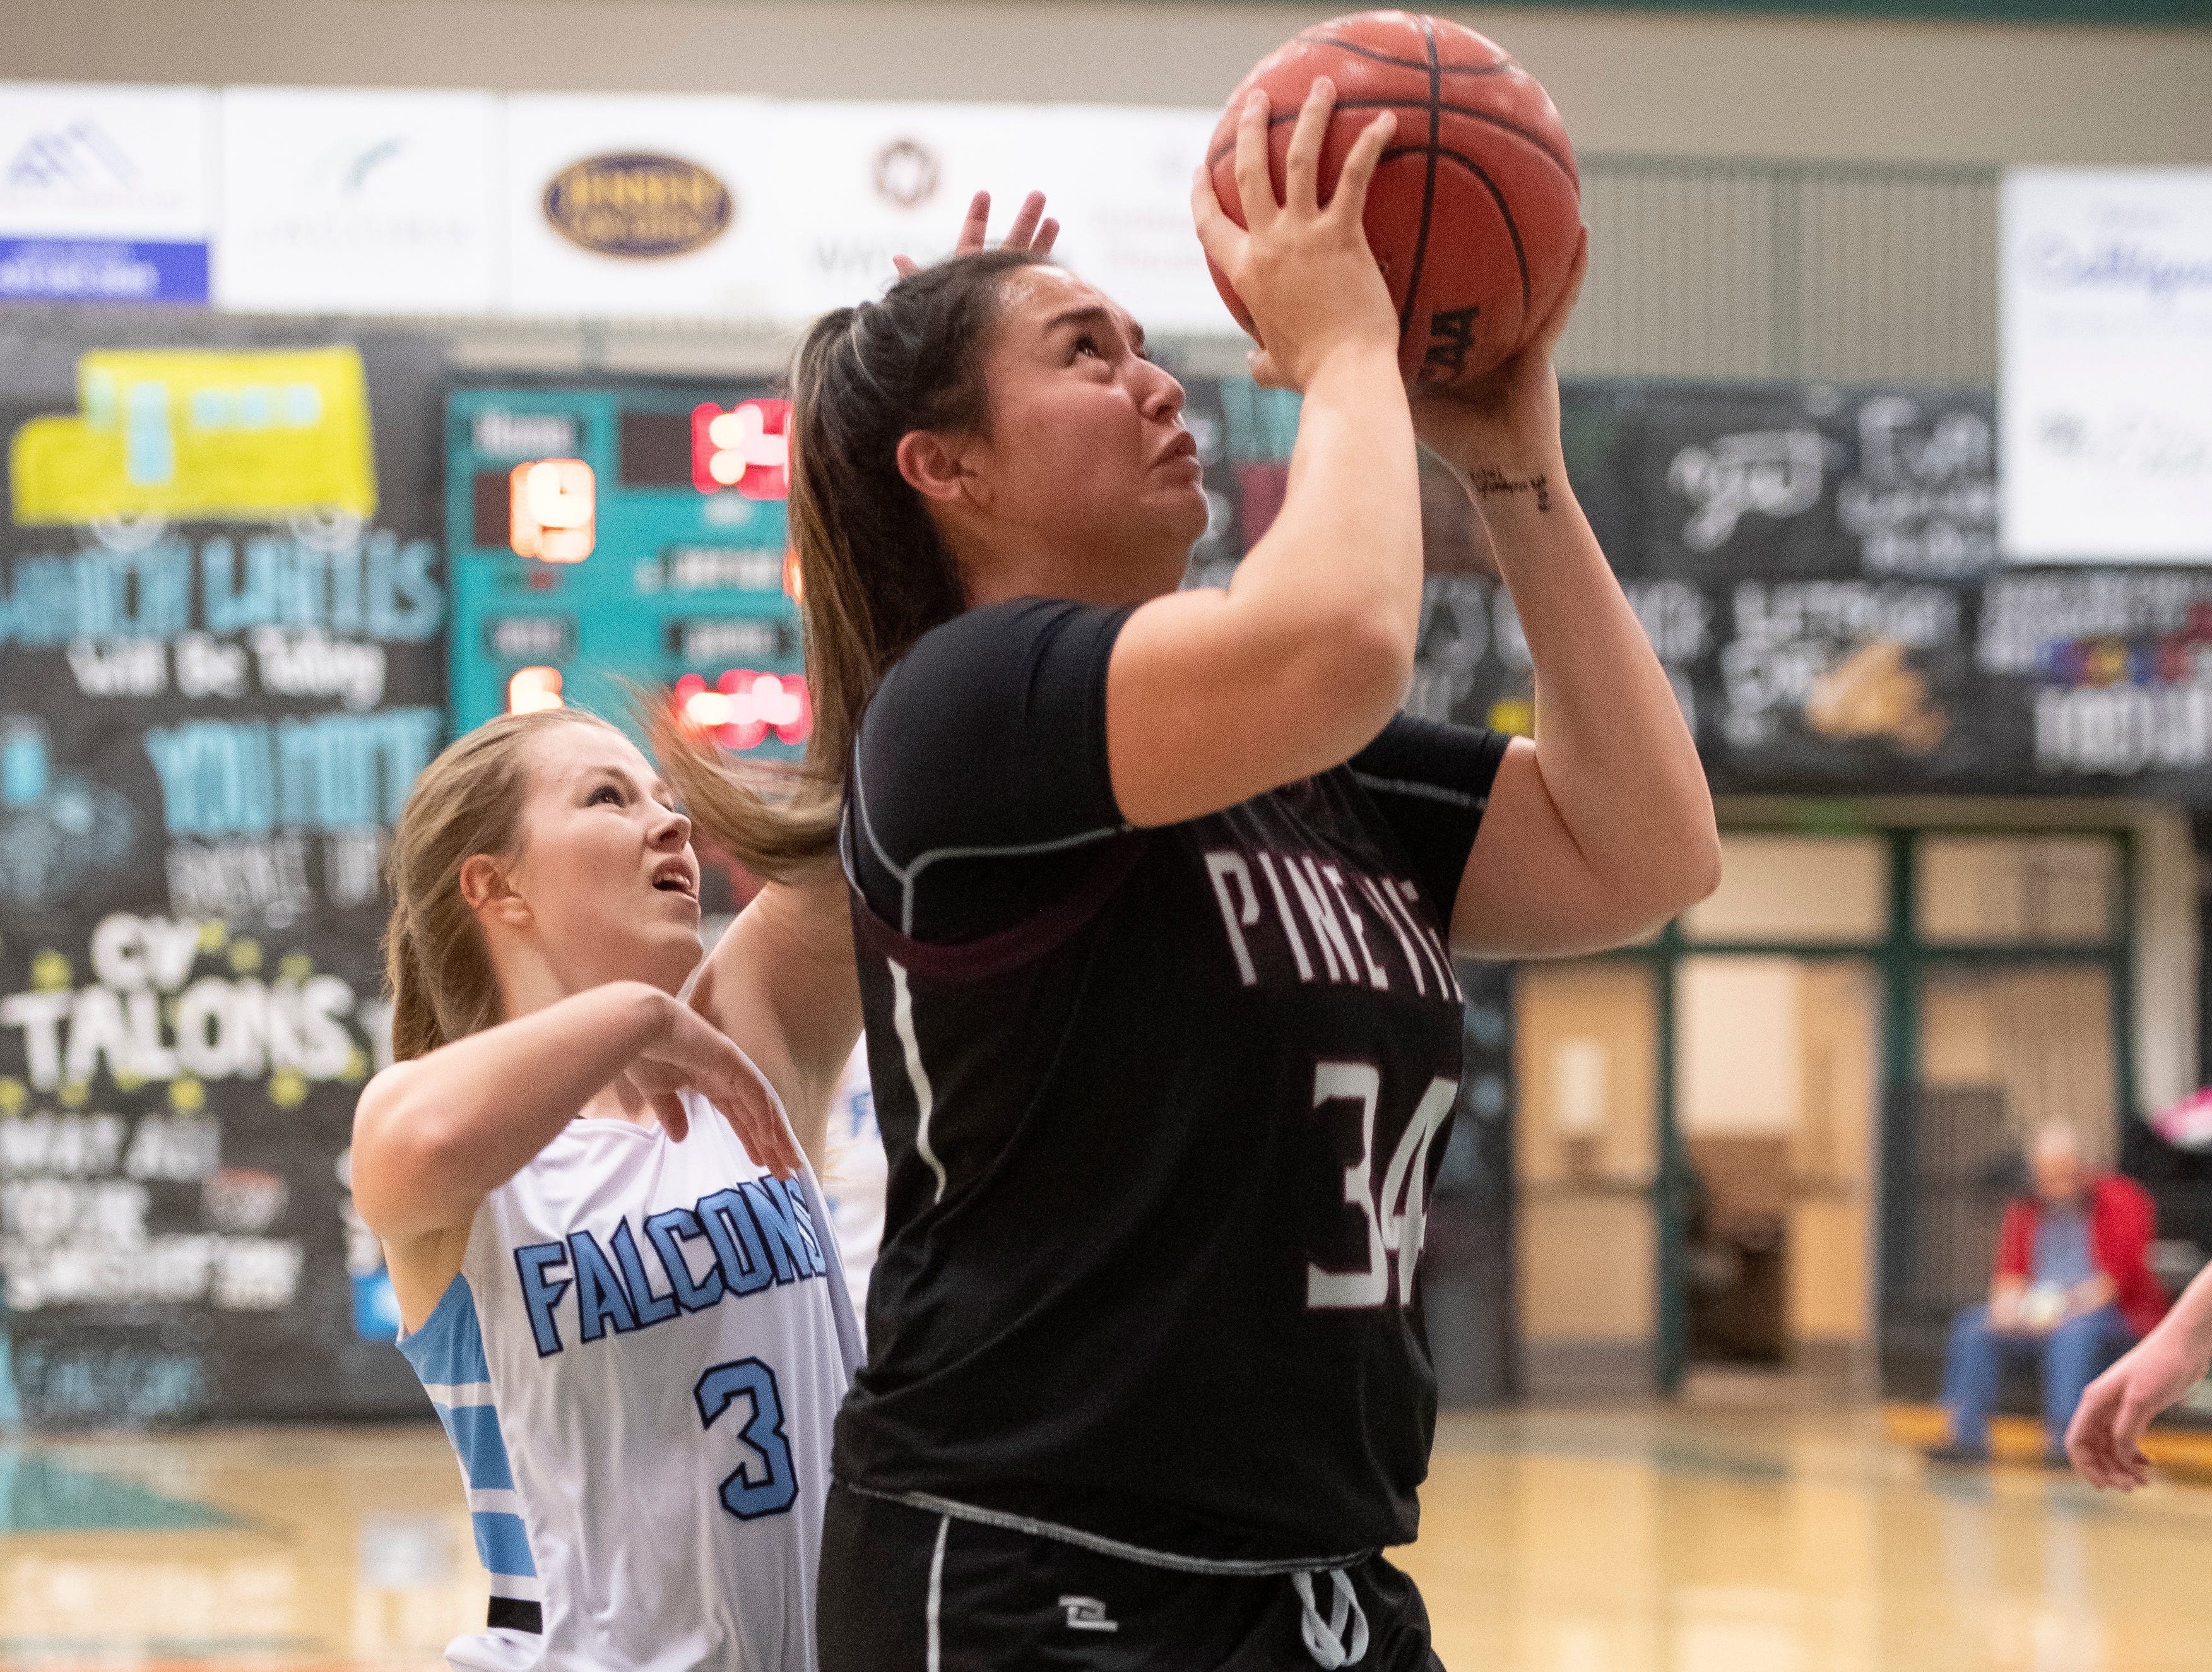 Pine View High School junior Leiani Tonga (34) takes a shot against Canyon View at CVHS Tuesday, January 15, 2019. The CVHS Falcons won, 48-46.